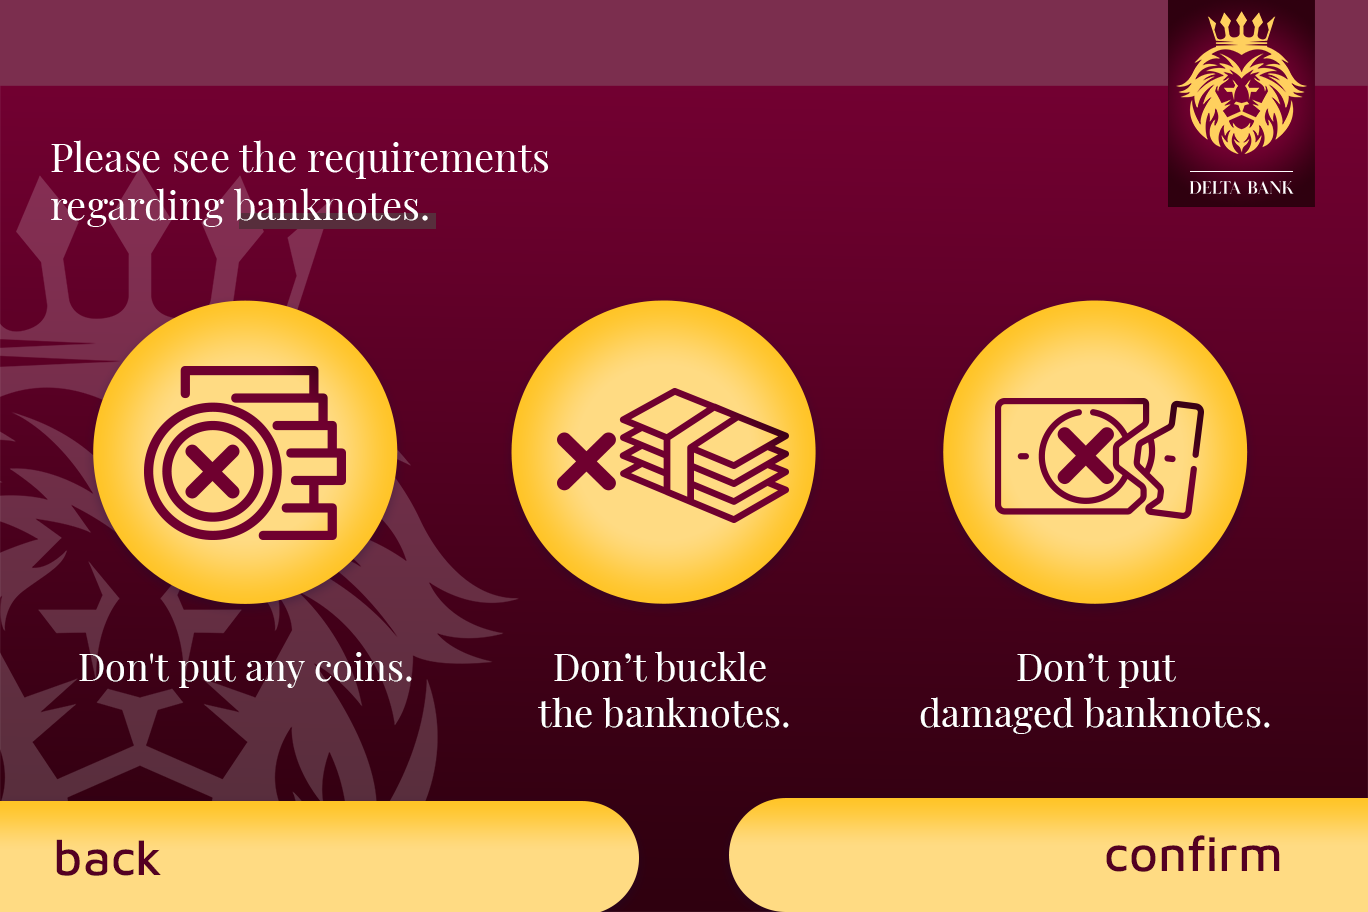 Banknote requirements@0,5x